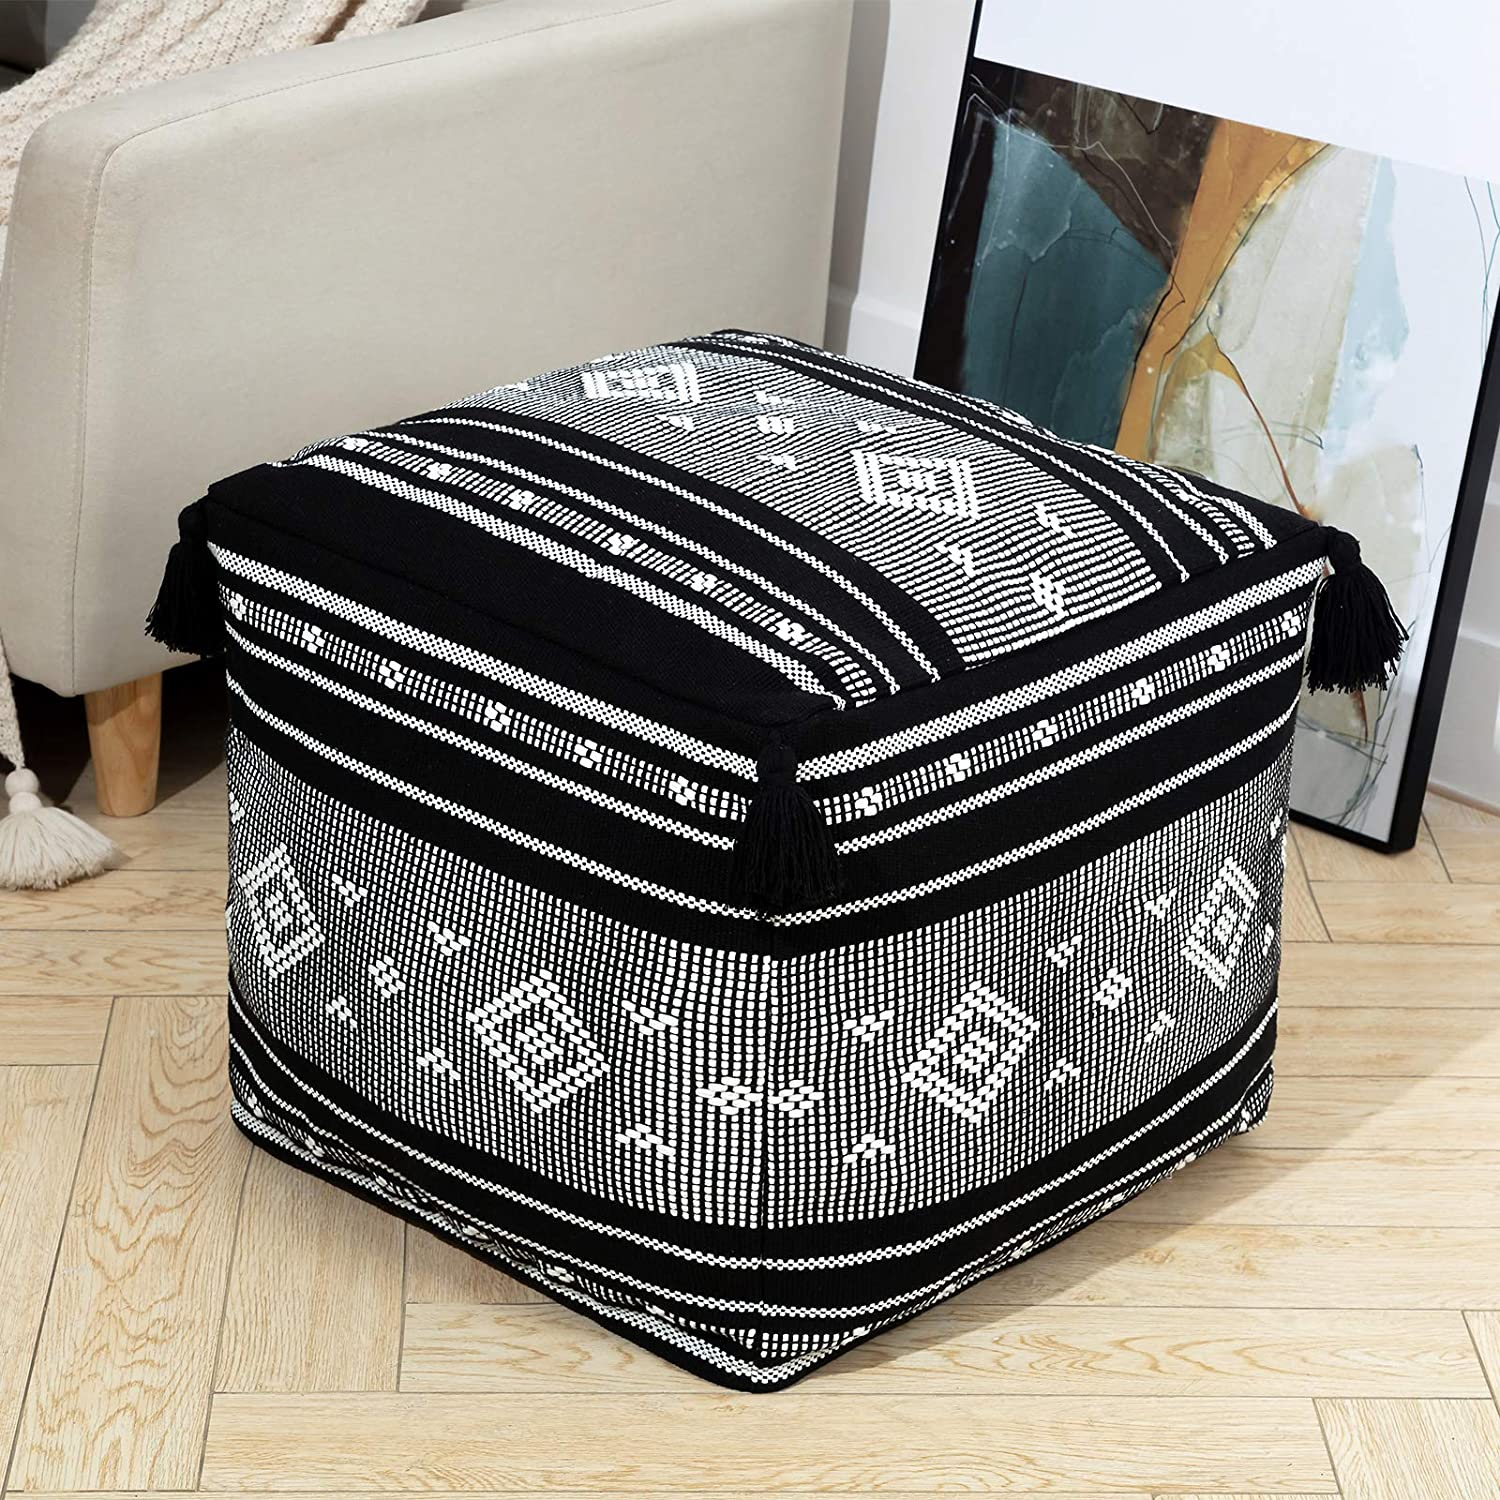 Woven Unstuffed Pouf Large discharge Phoenix Mall sale Cover Square for Ottoman Boho Cube Storage